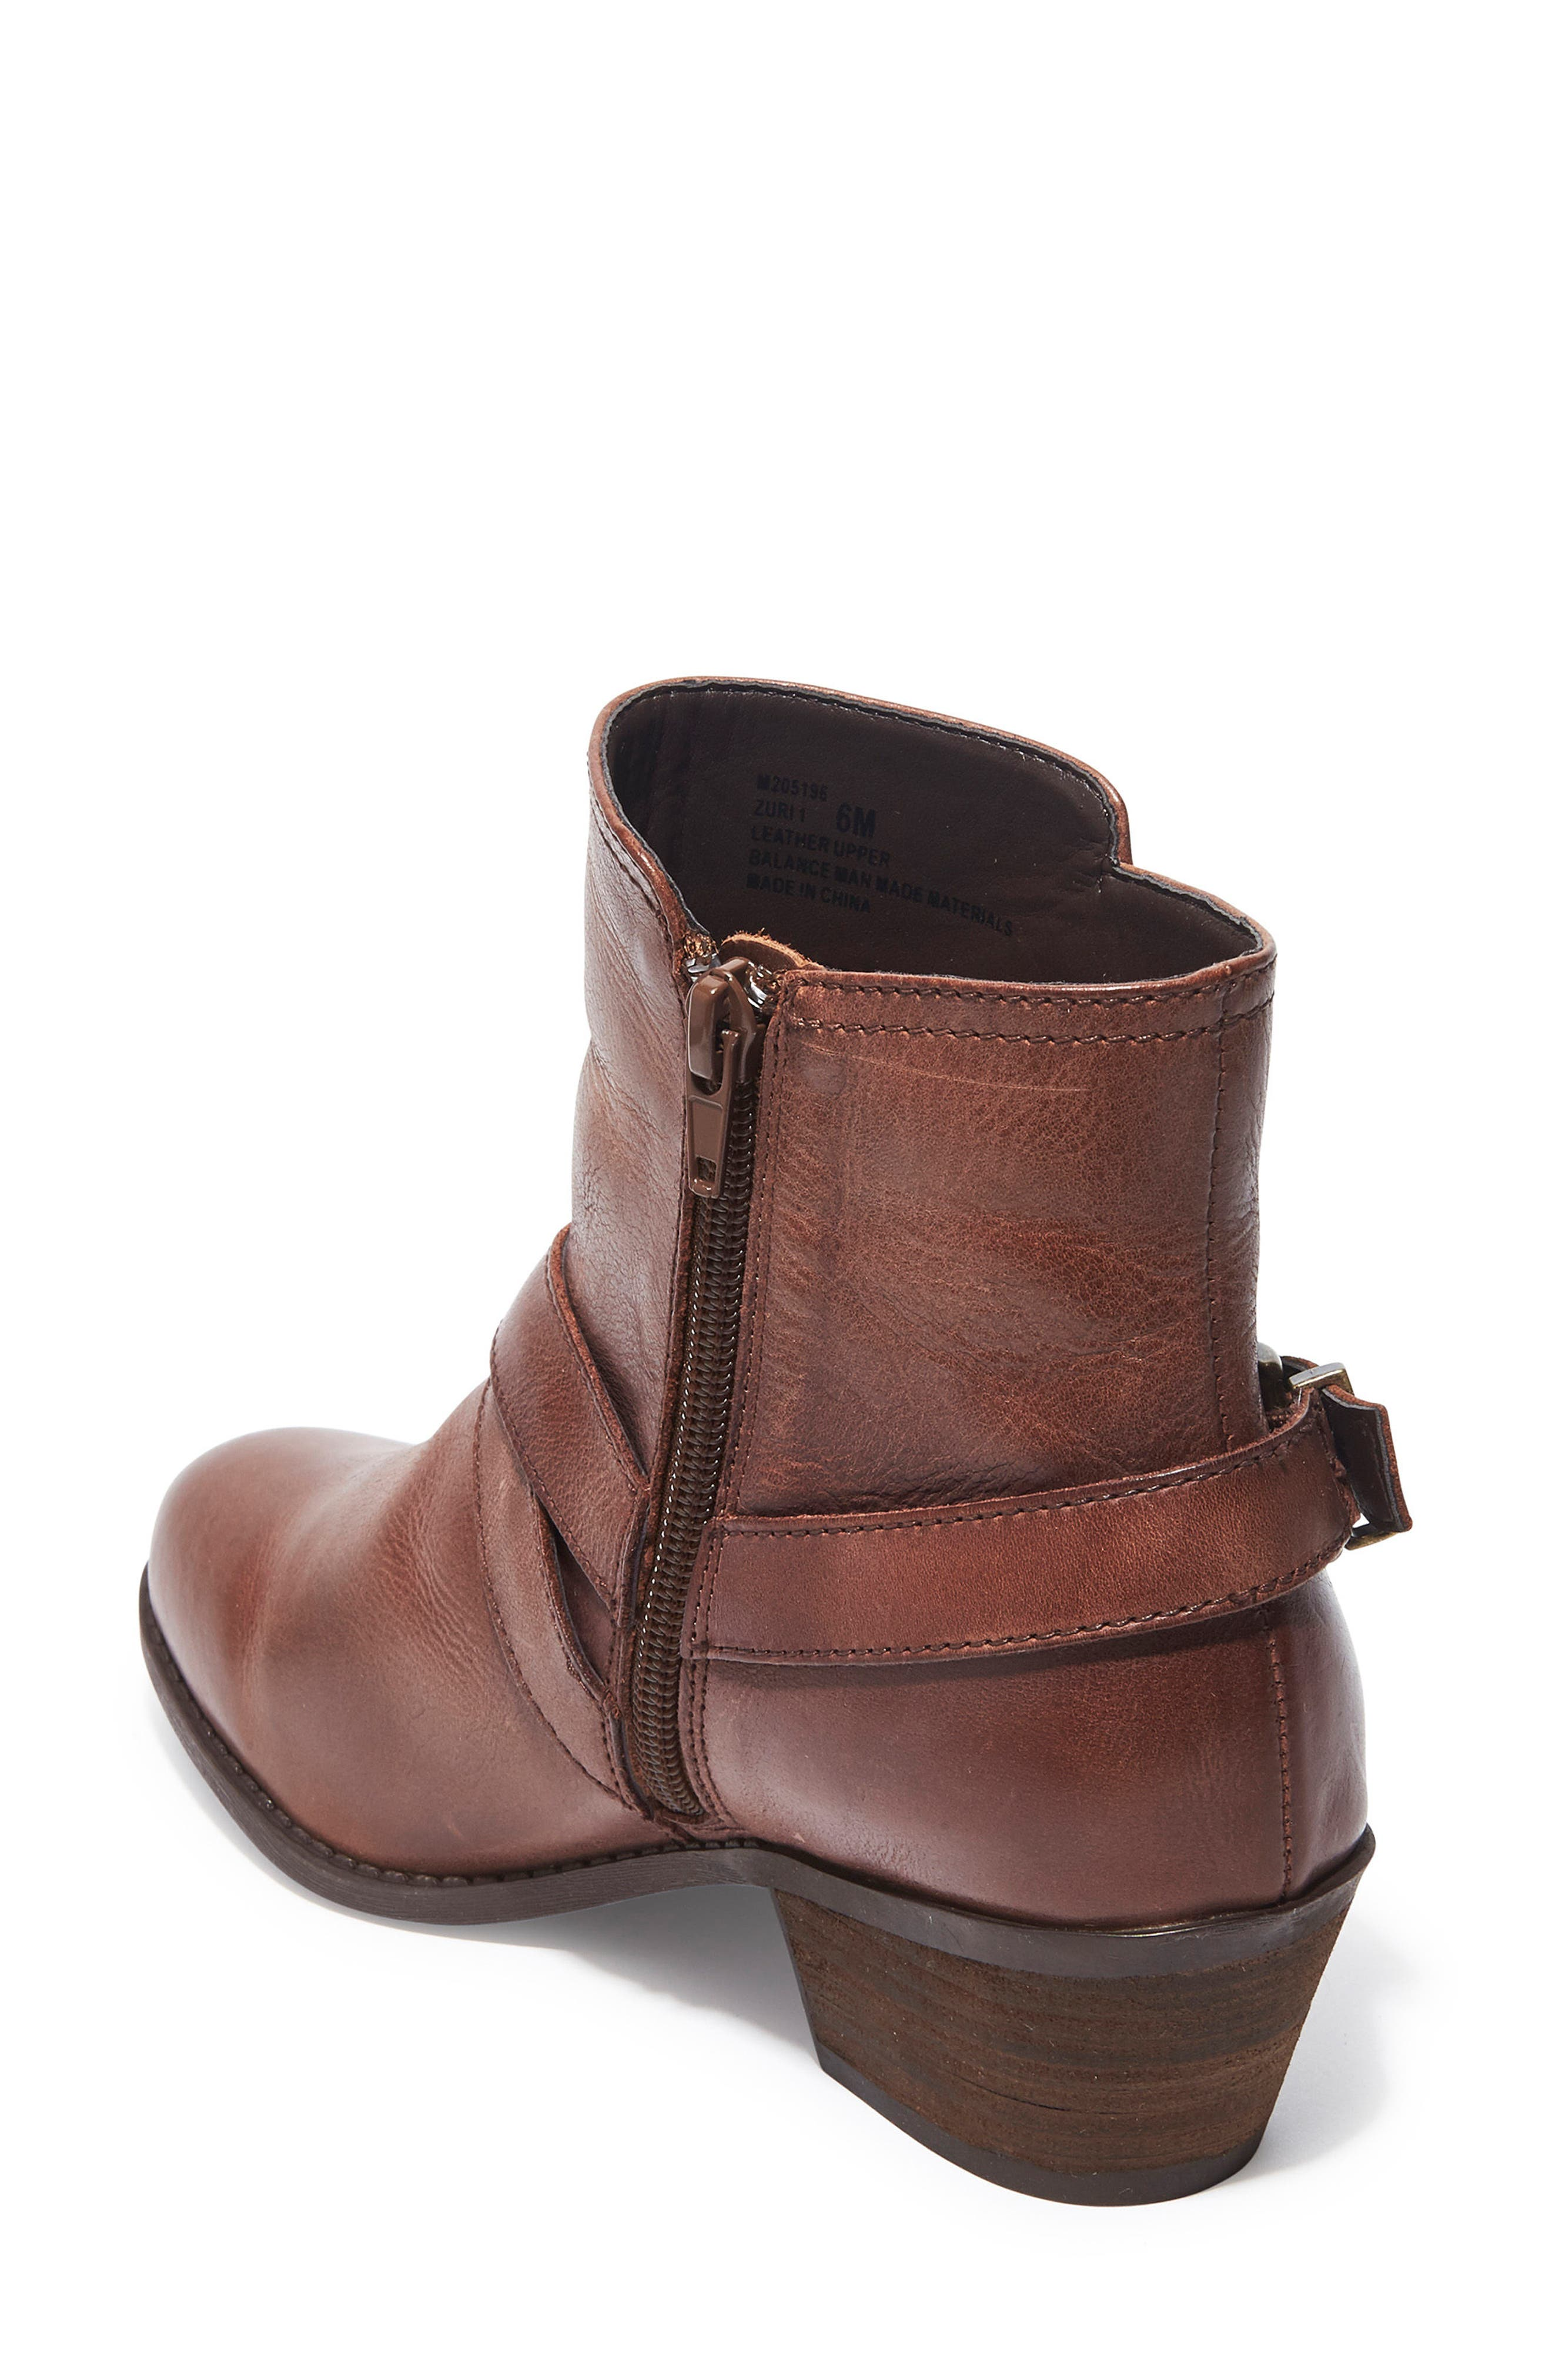 Zuri Buckle Boot,                             Alternate thumbnail 2, color,                             Chocolate Leather